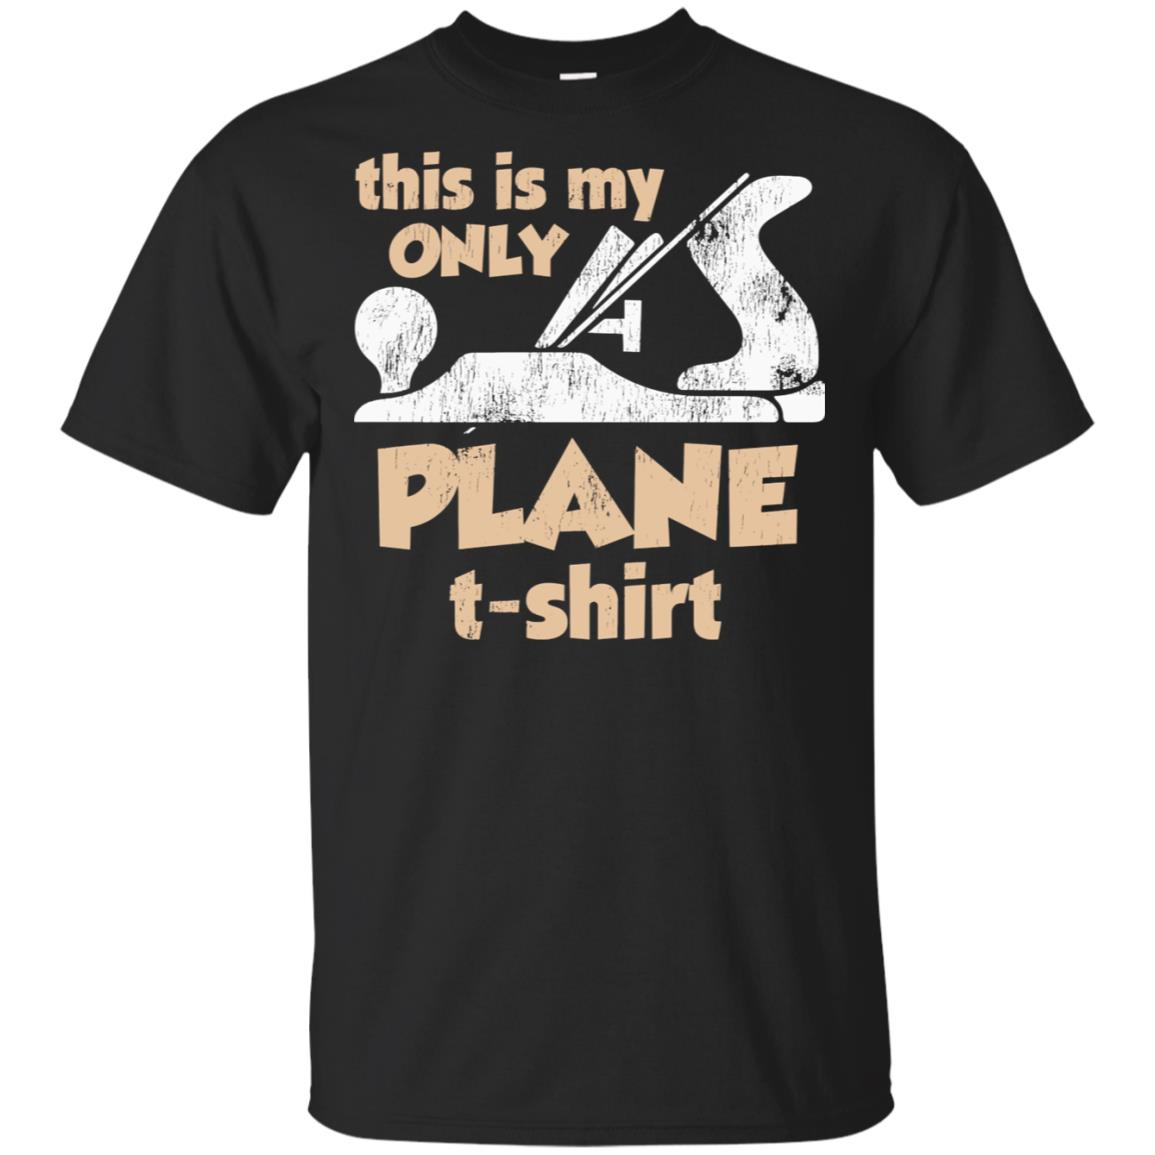 This is my Only Plane for Carpenters Wood Workers Unisex Short Sleeve